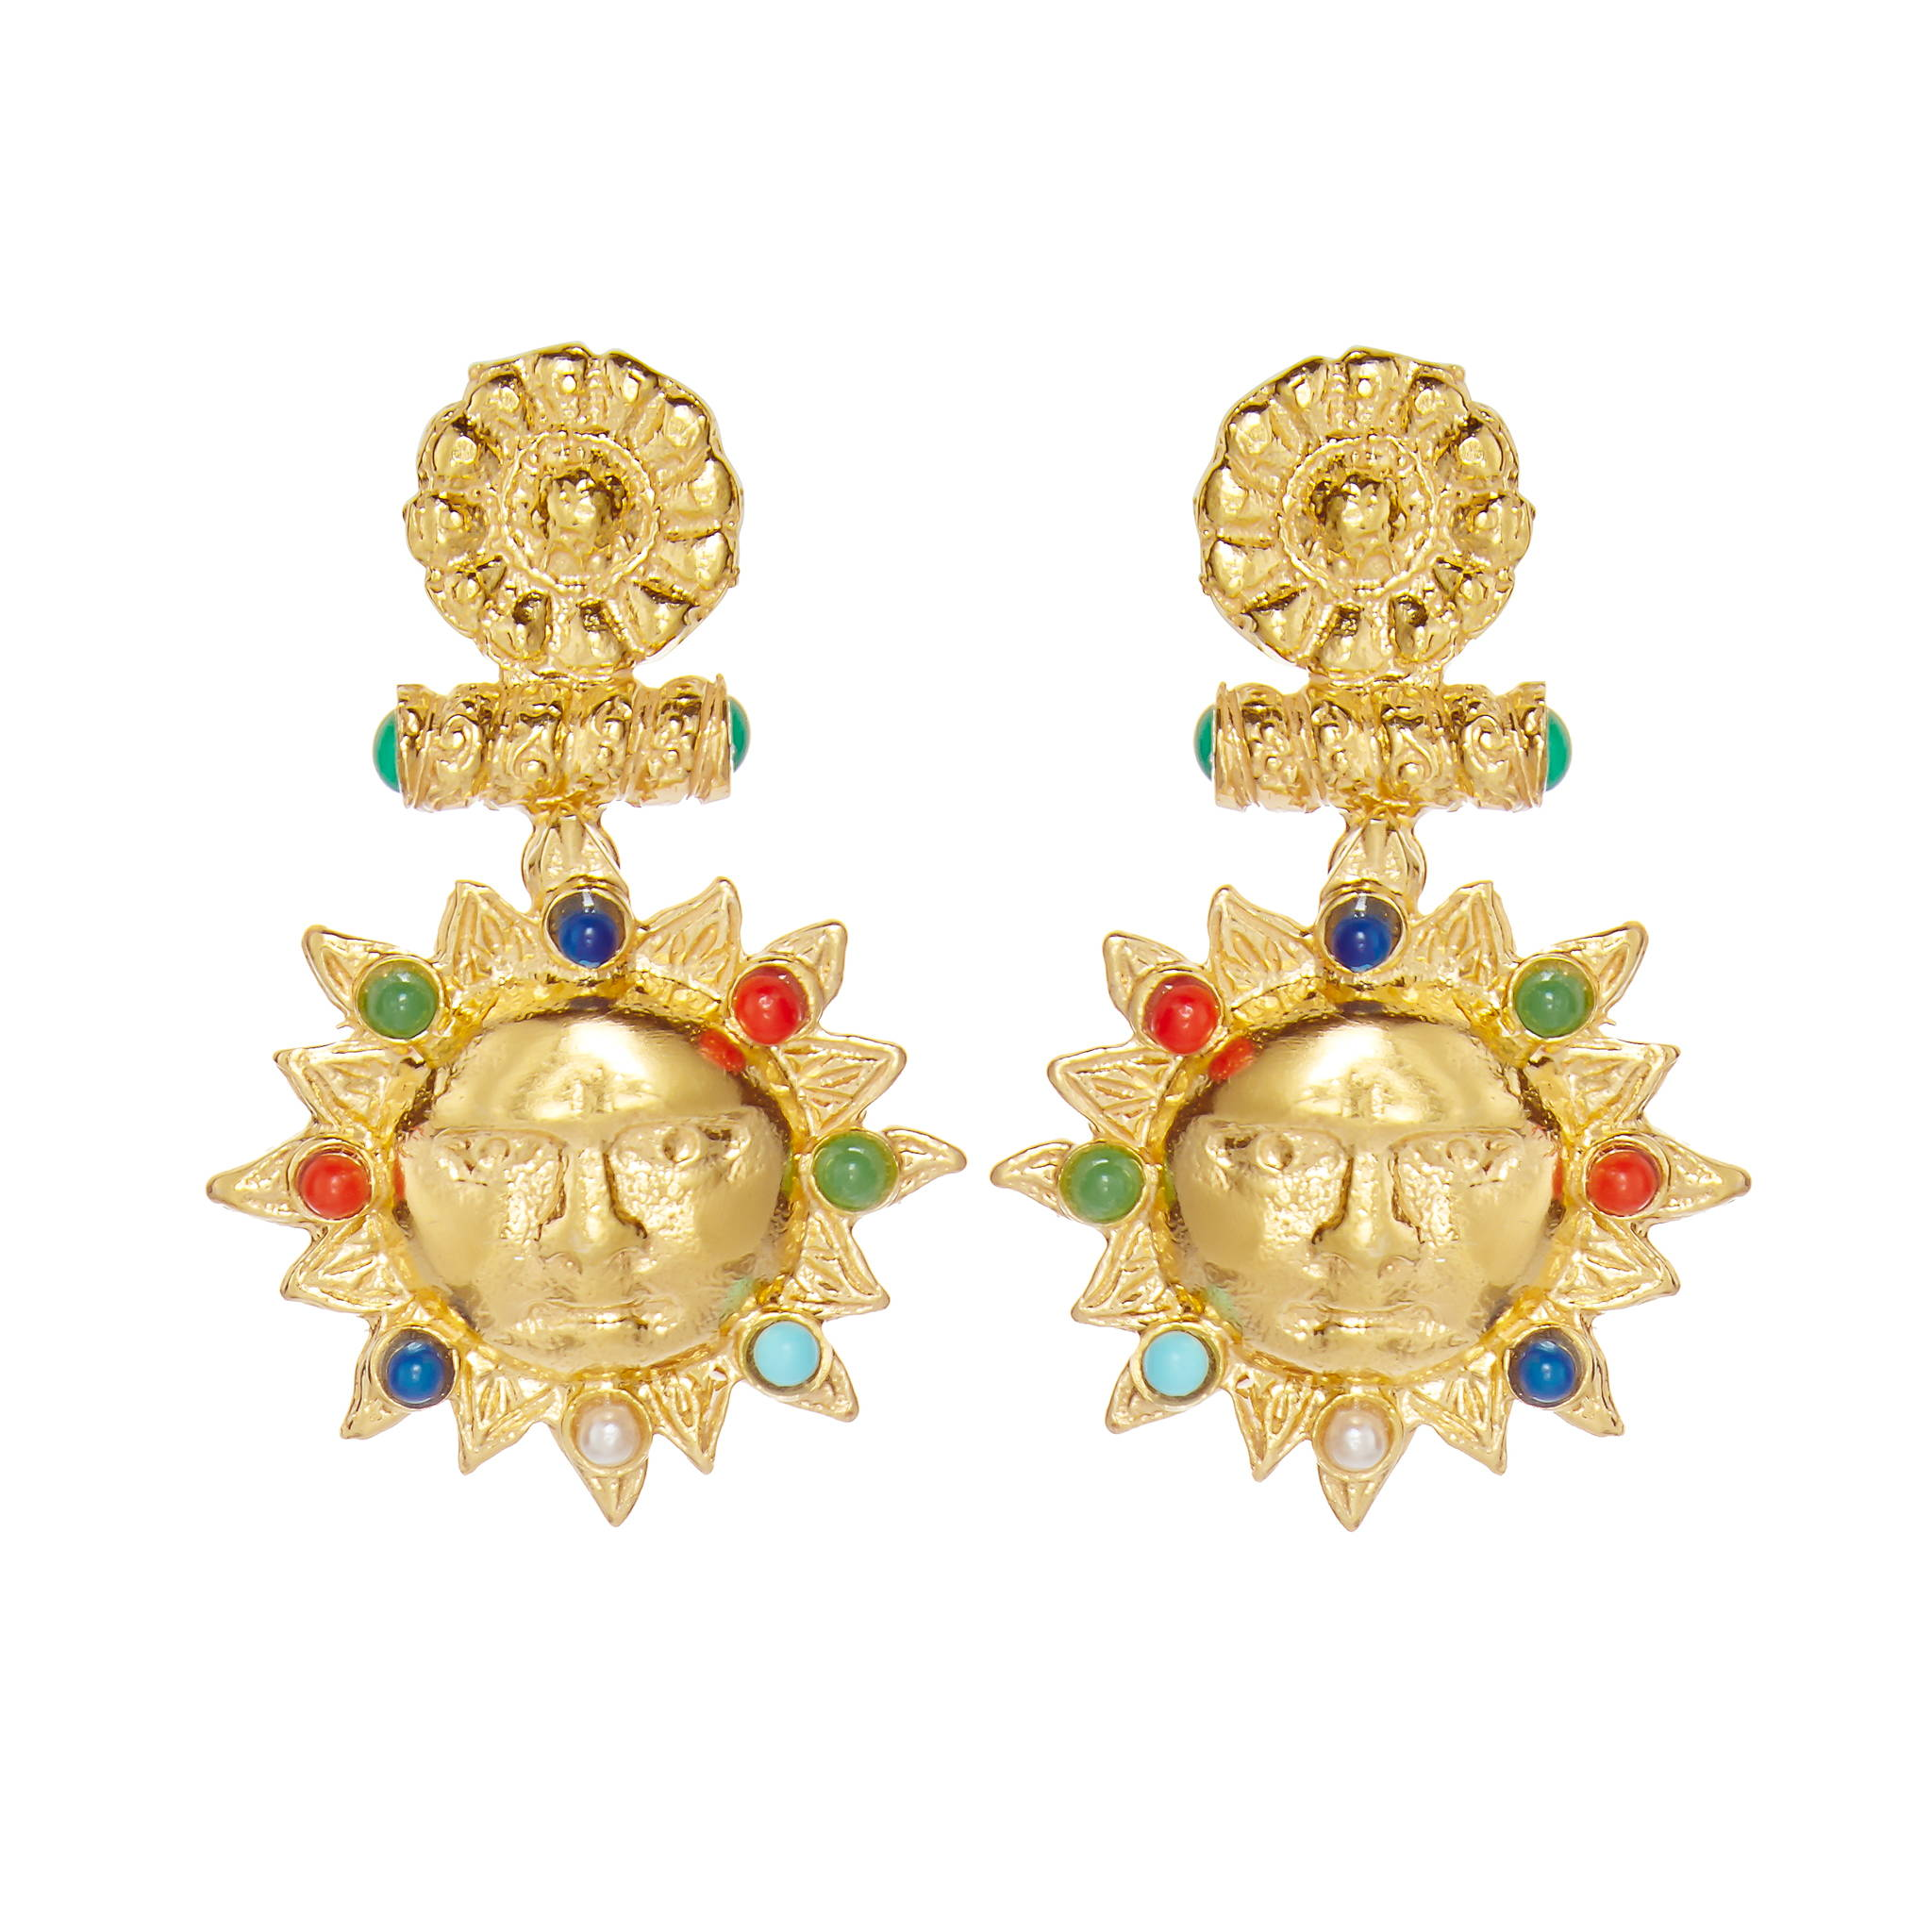 SORU JEWELLERY YELLOW GOLD SUN EARRINGS, SICILIAN SUN EARRINGS